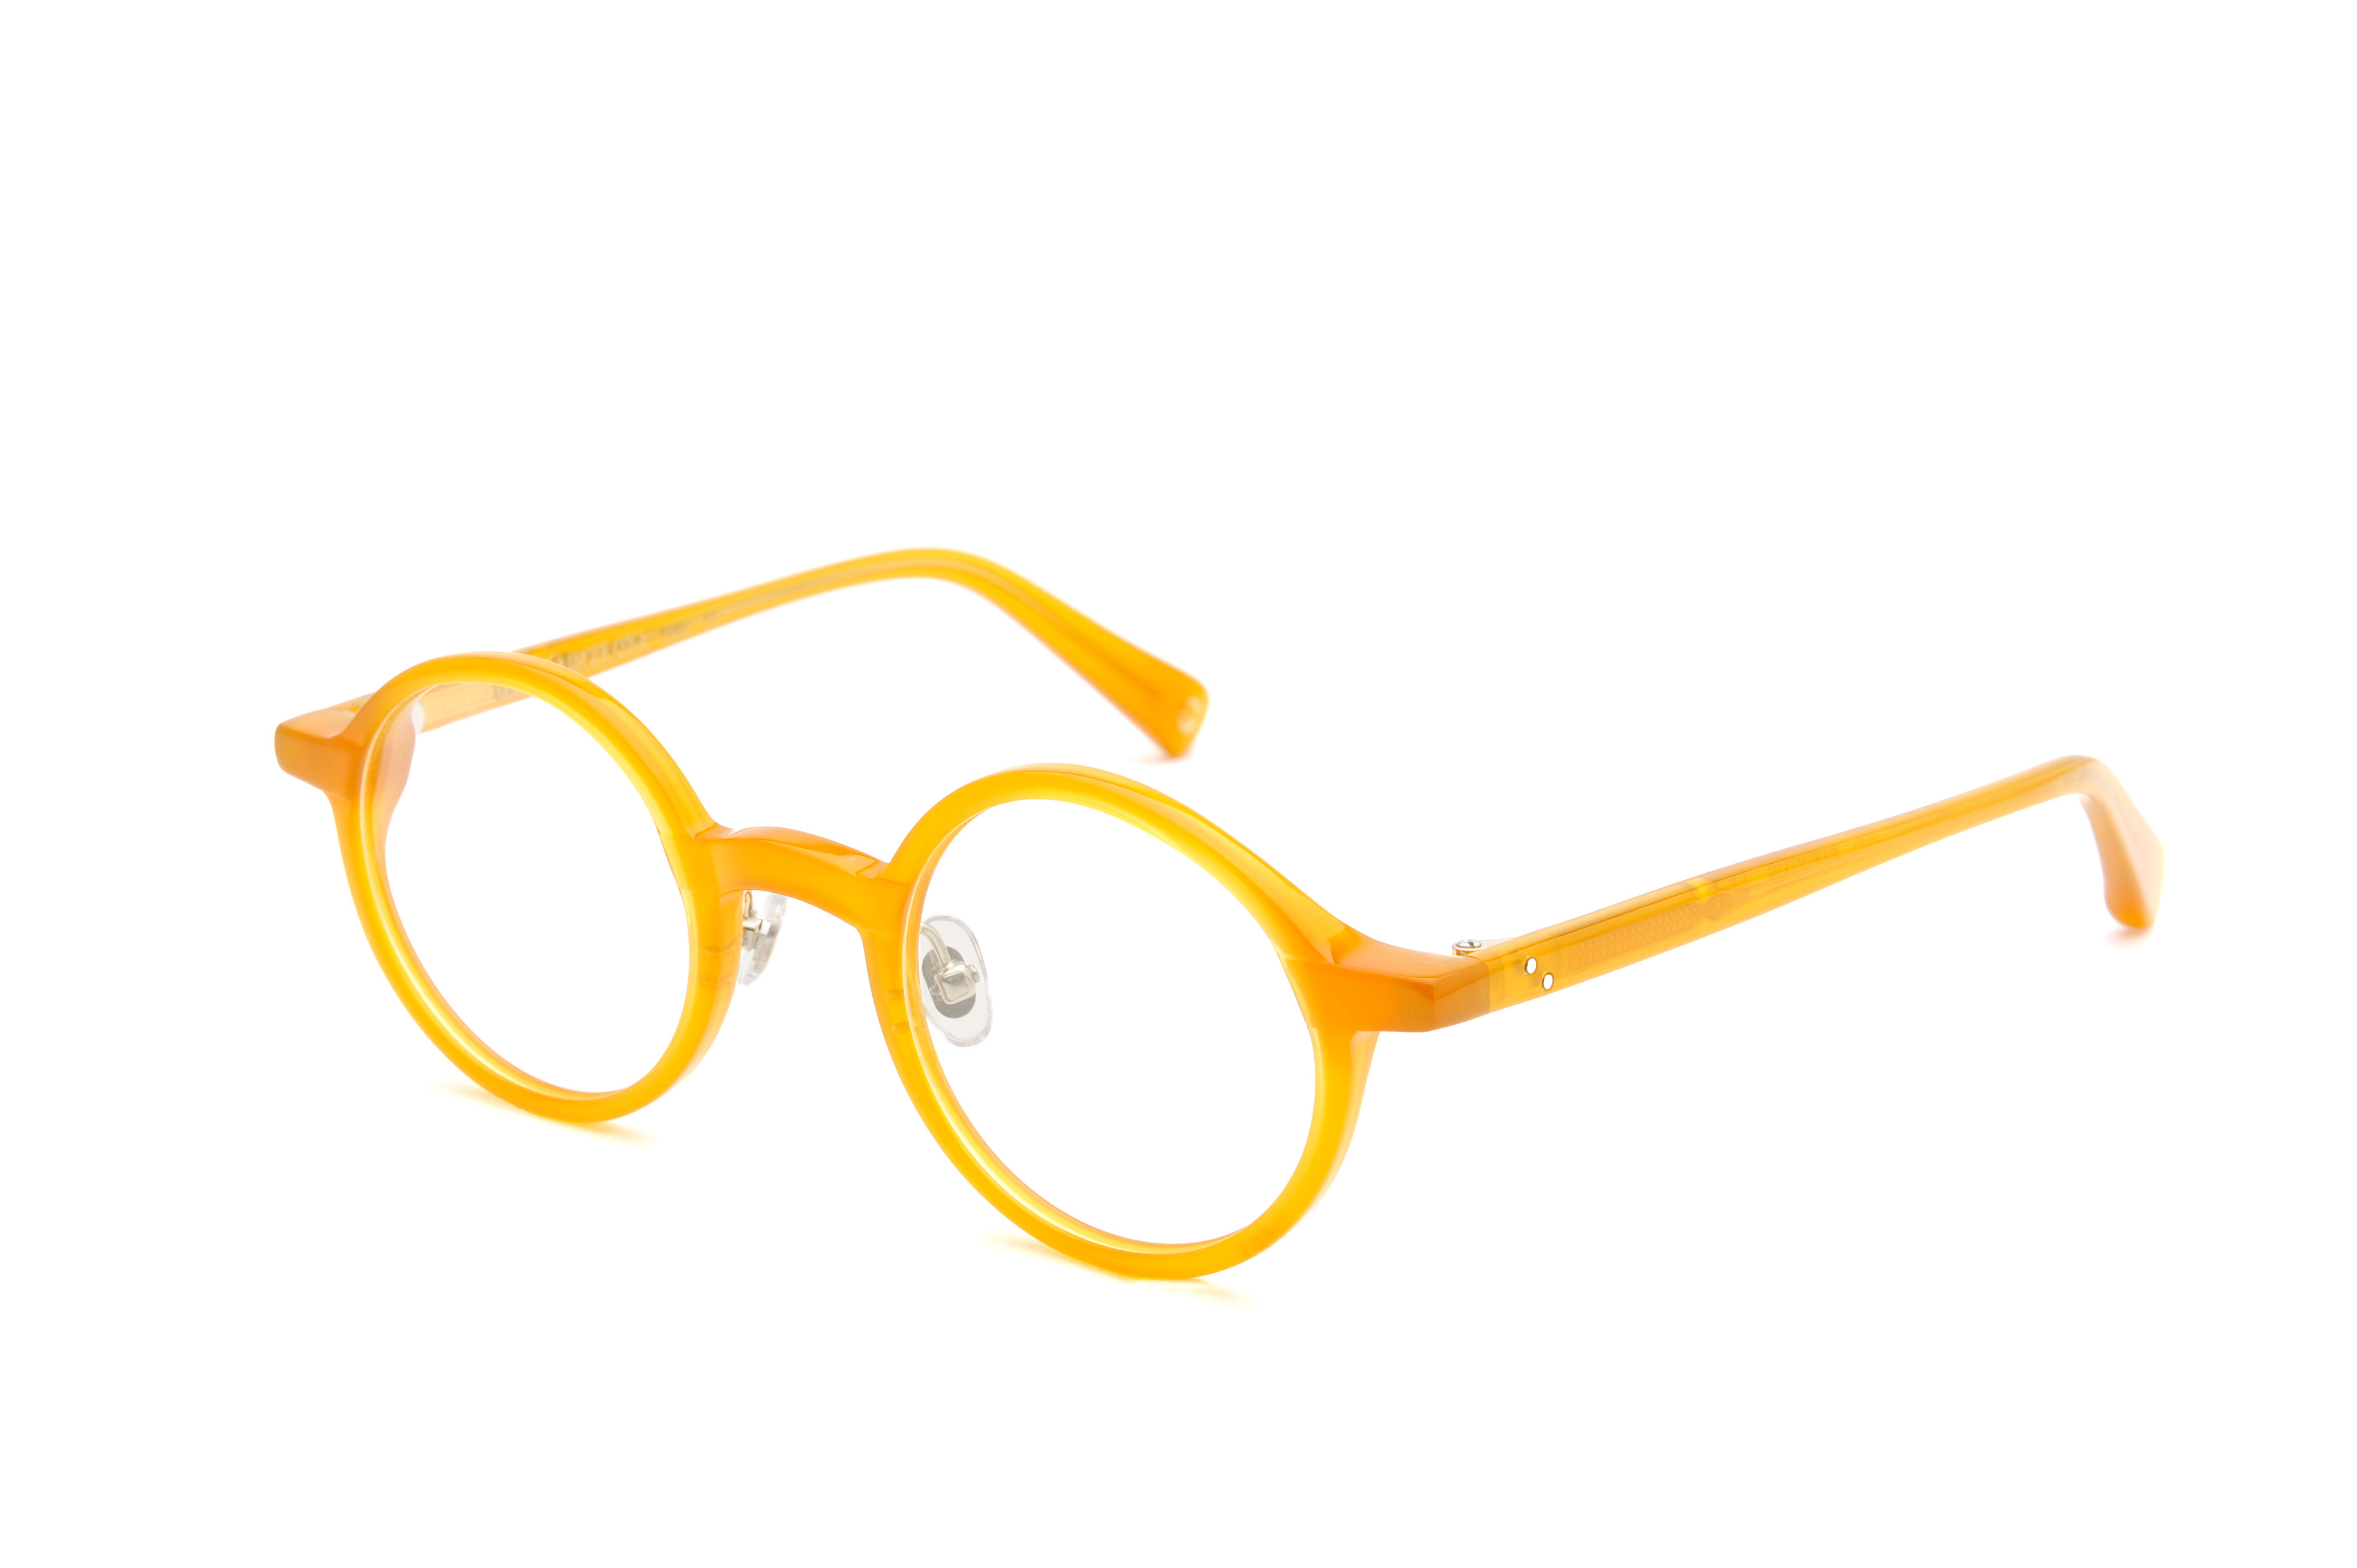 Grey acetate rounded yellow sunglasses by GIGI Studios